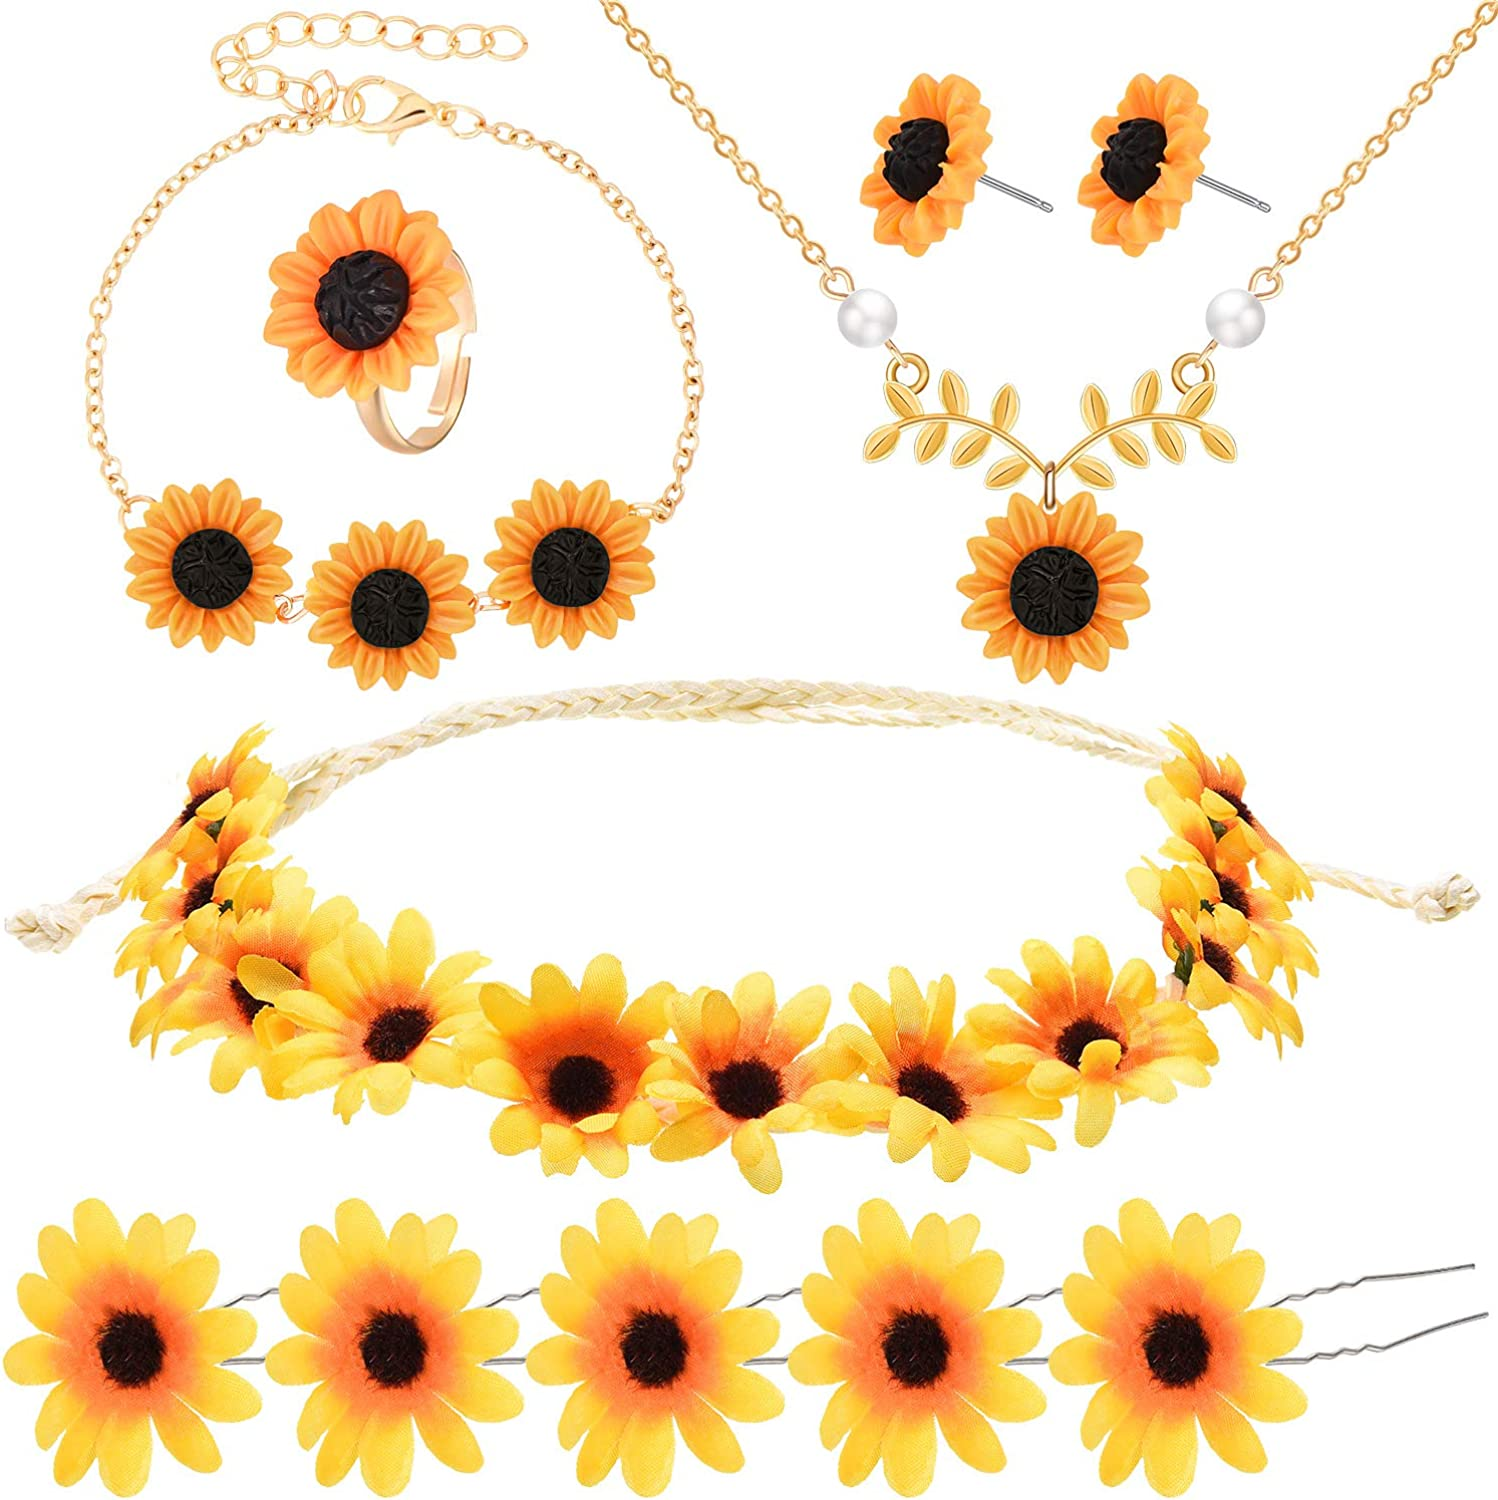 10 Pieces Sunflower Pendant Faux Pearl Chain Necklace Sunflower Charm Bracelet Earrings Ring Sunflower Hair Clip Sunflower Boho Headband Wreath for Women Jewelry Accessories